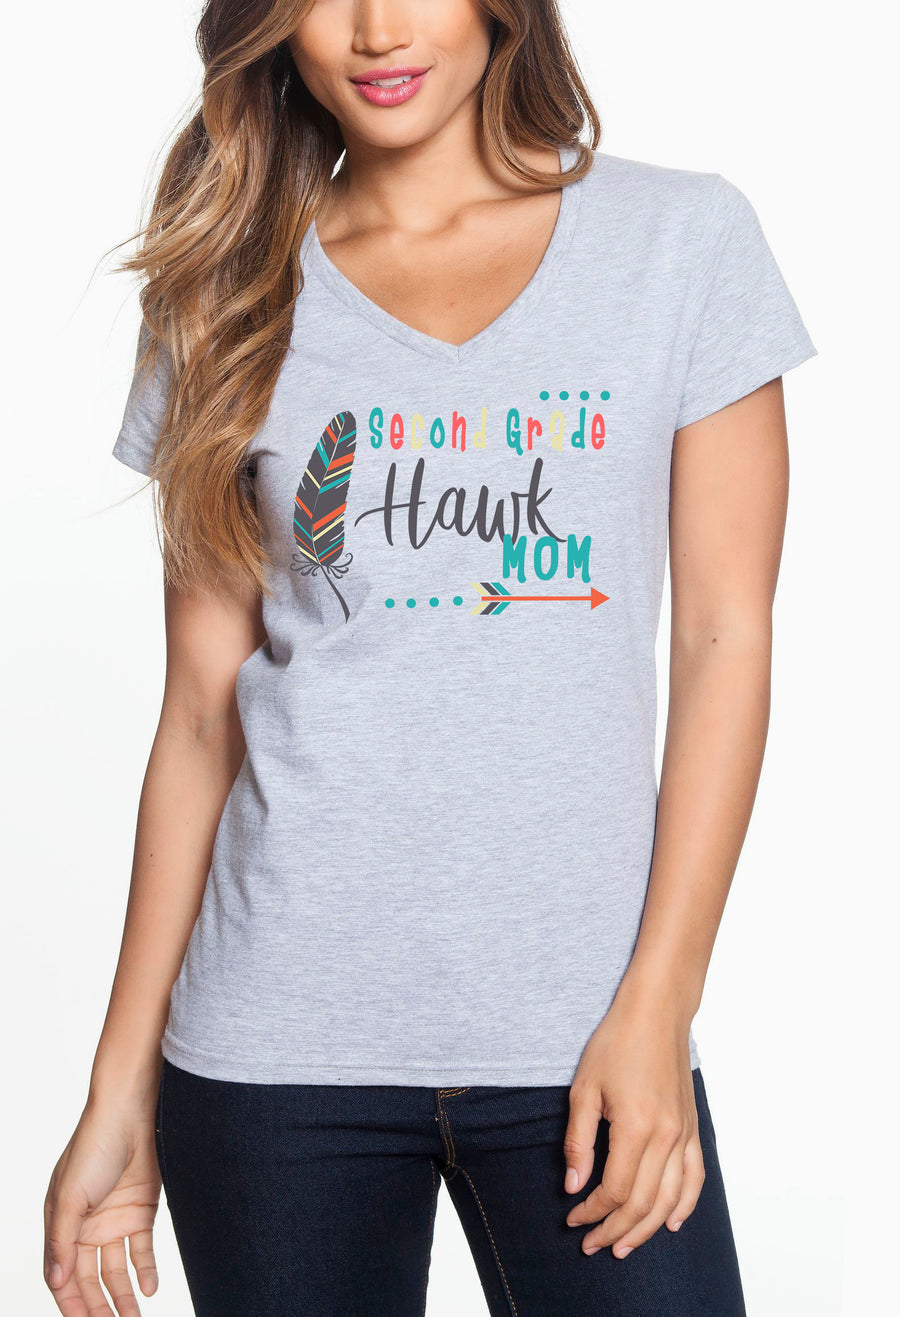 Second Grade Mom - Women's Lightweight V-Neck Tee Grey